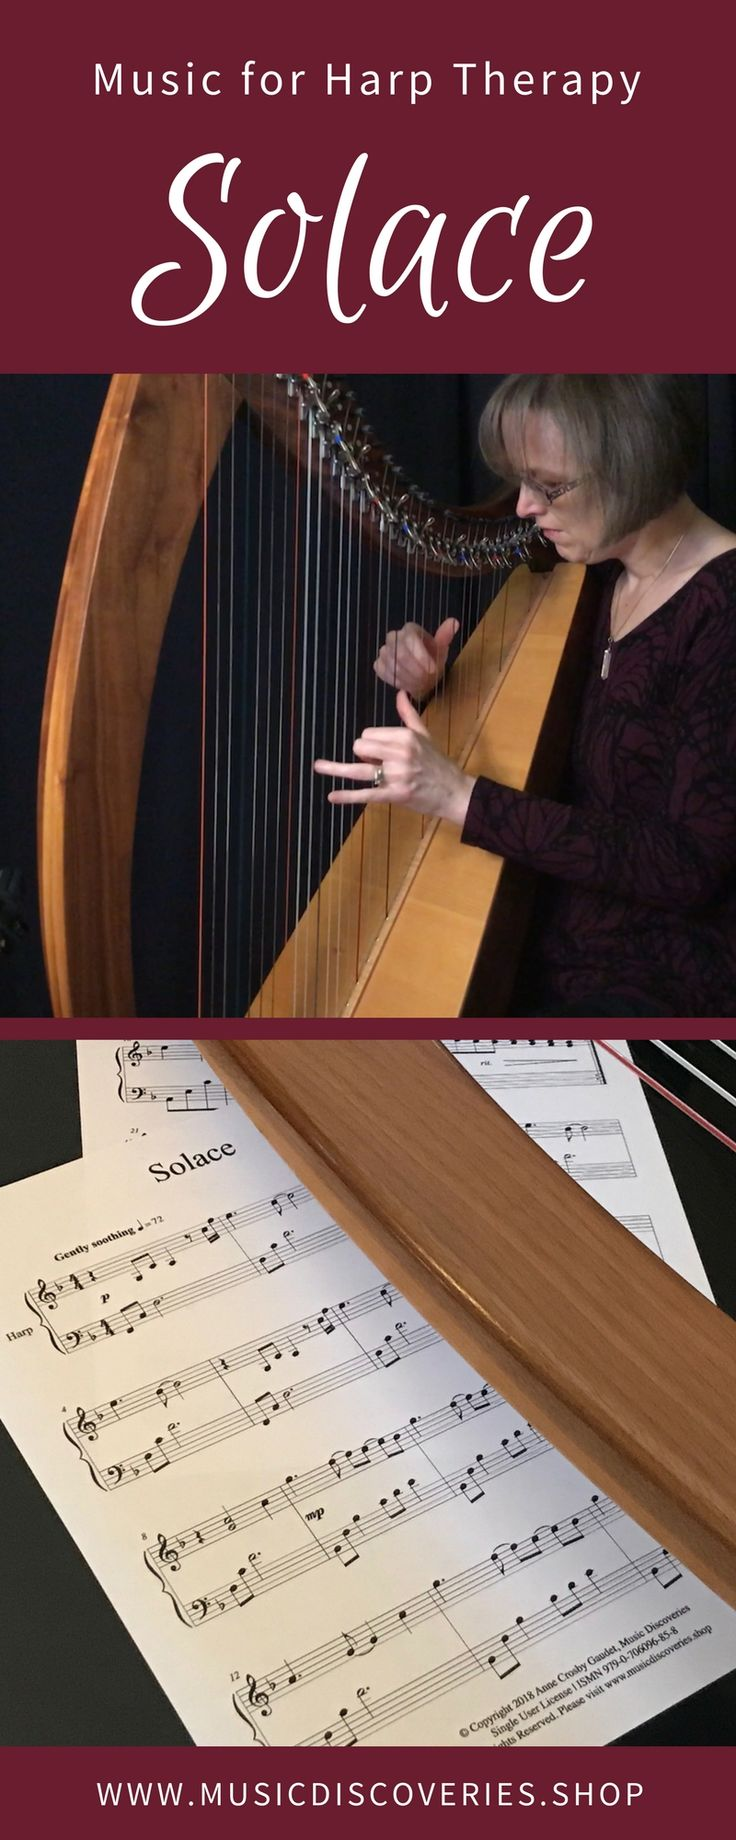 Solace, by Anne Crosby Gaudet is a beautiful, soothing piece for harp therapy, meditation or personal reflection. Solace is about finding comfort when you are feeling sad or worried. The resonance of the low strings, paired with a relaxing pulse and the familiar repetition of patterns creates a space for healing. #harpmusic #harptherapy